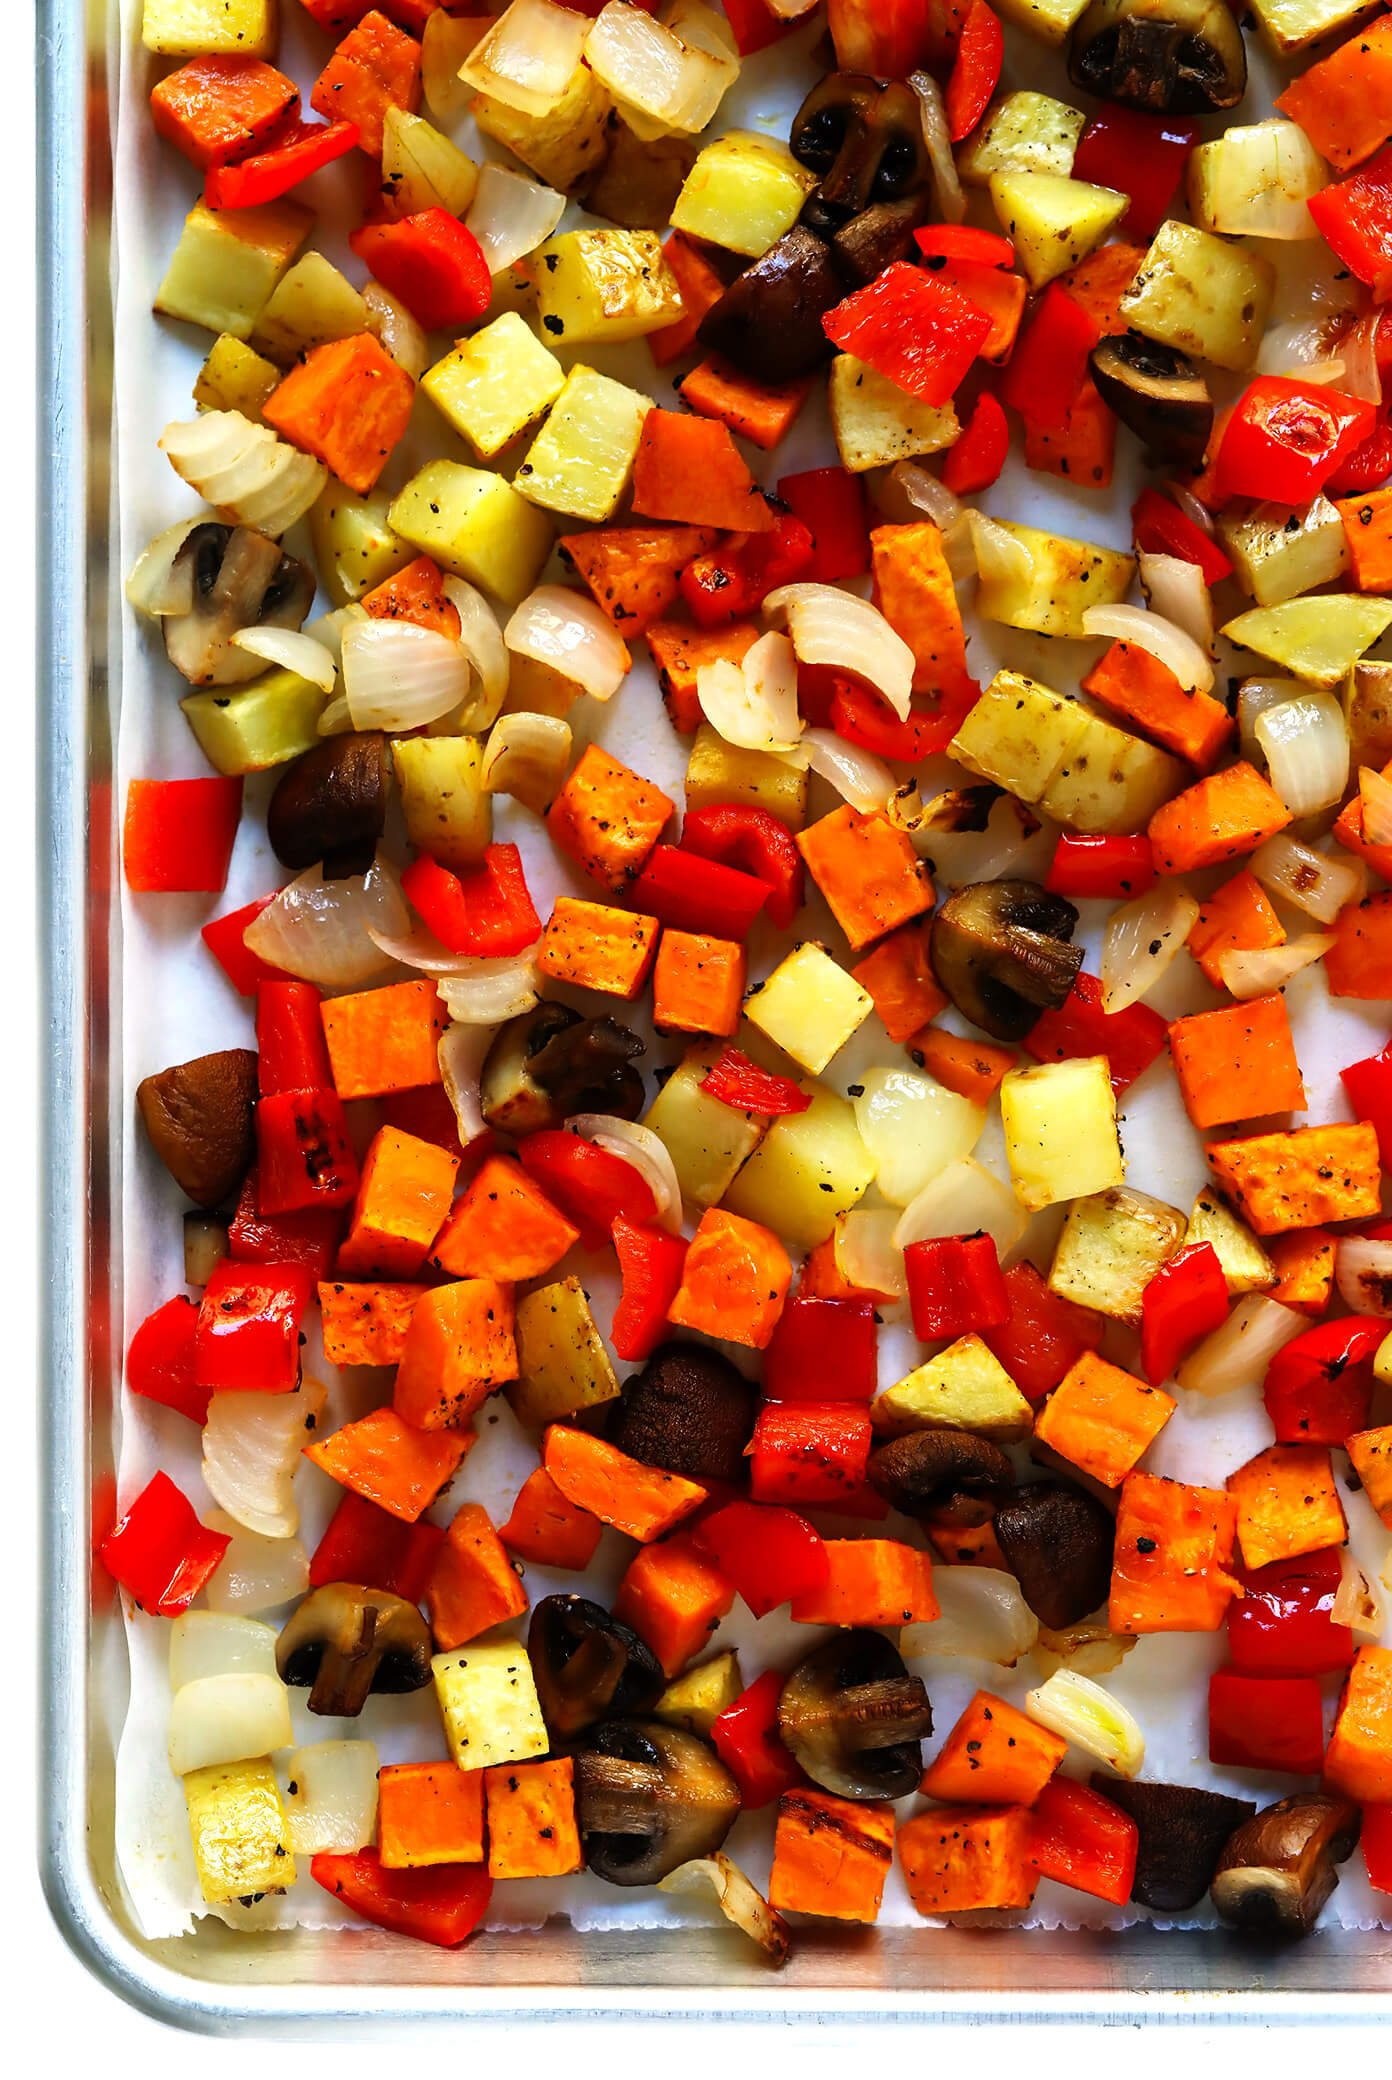 Roasted Vegetables | Cozy Autumn Breakfast Casserole Recipe